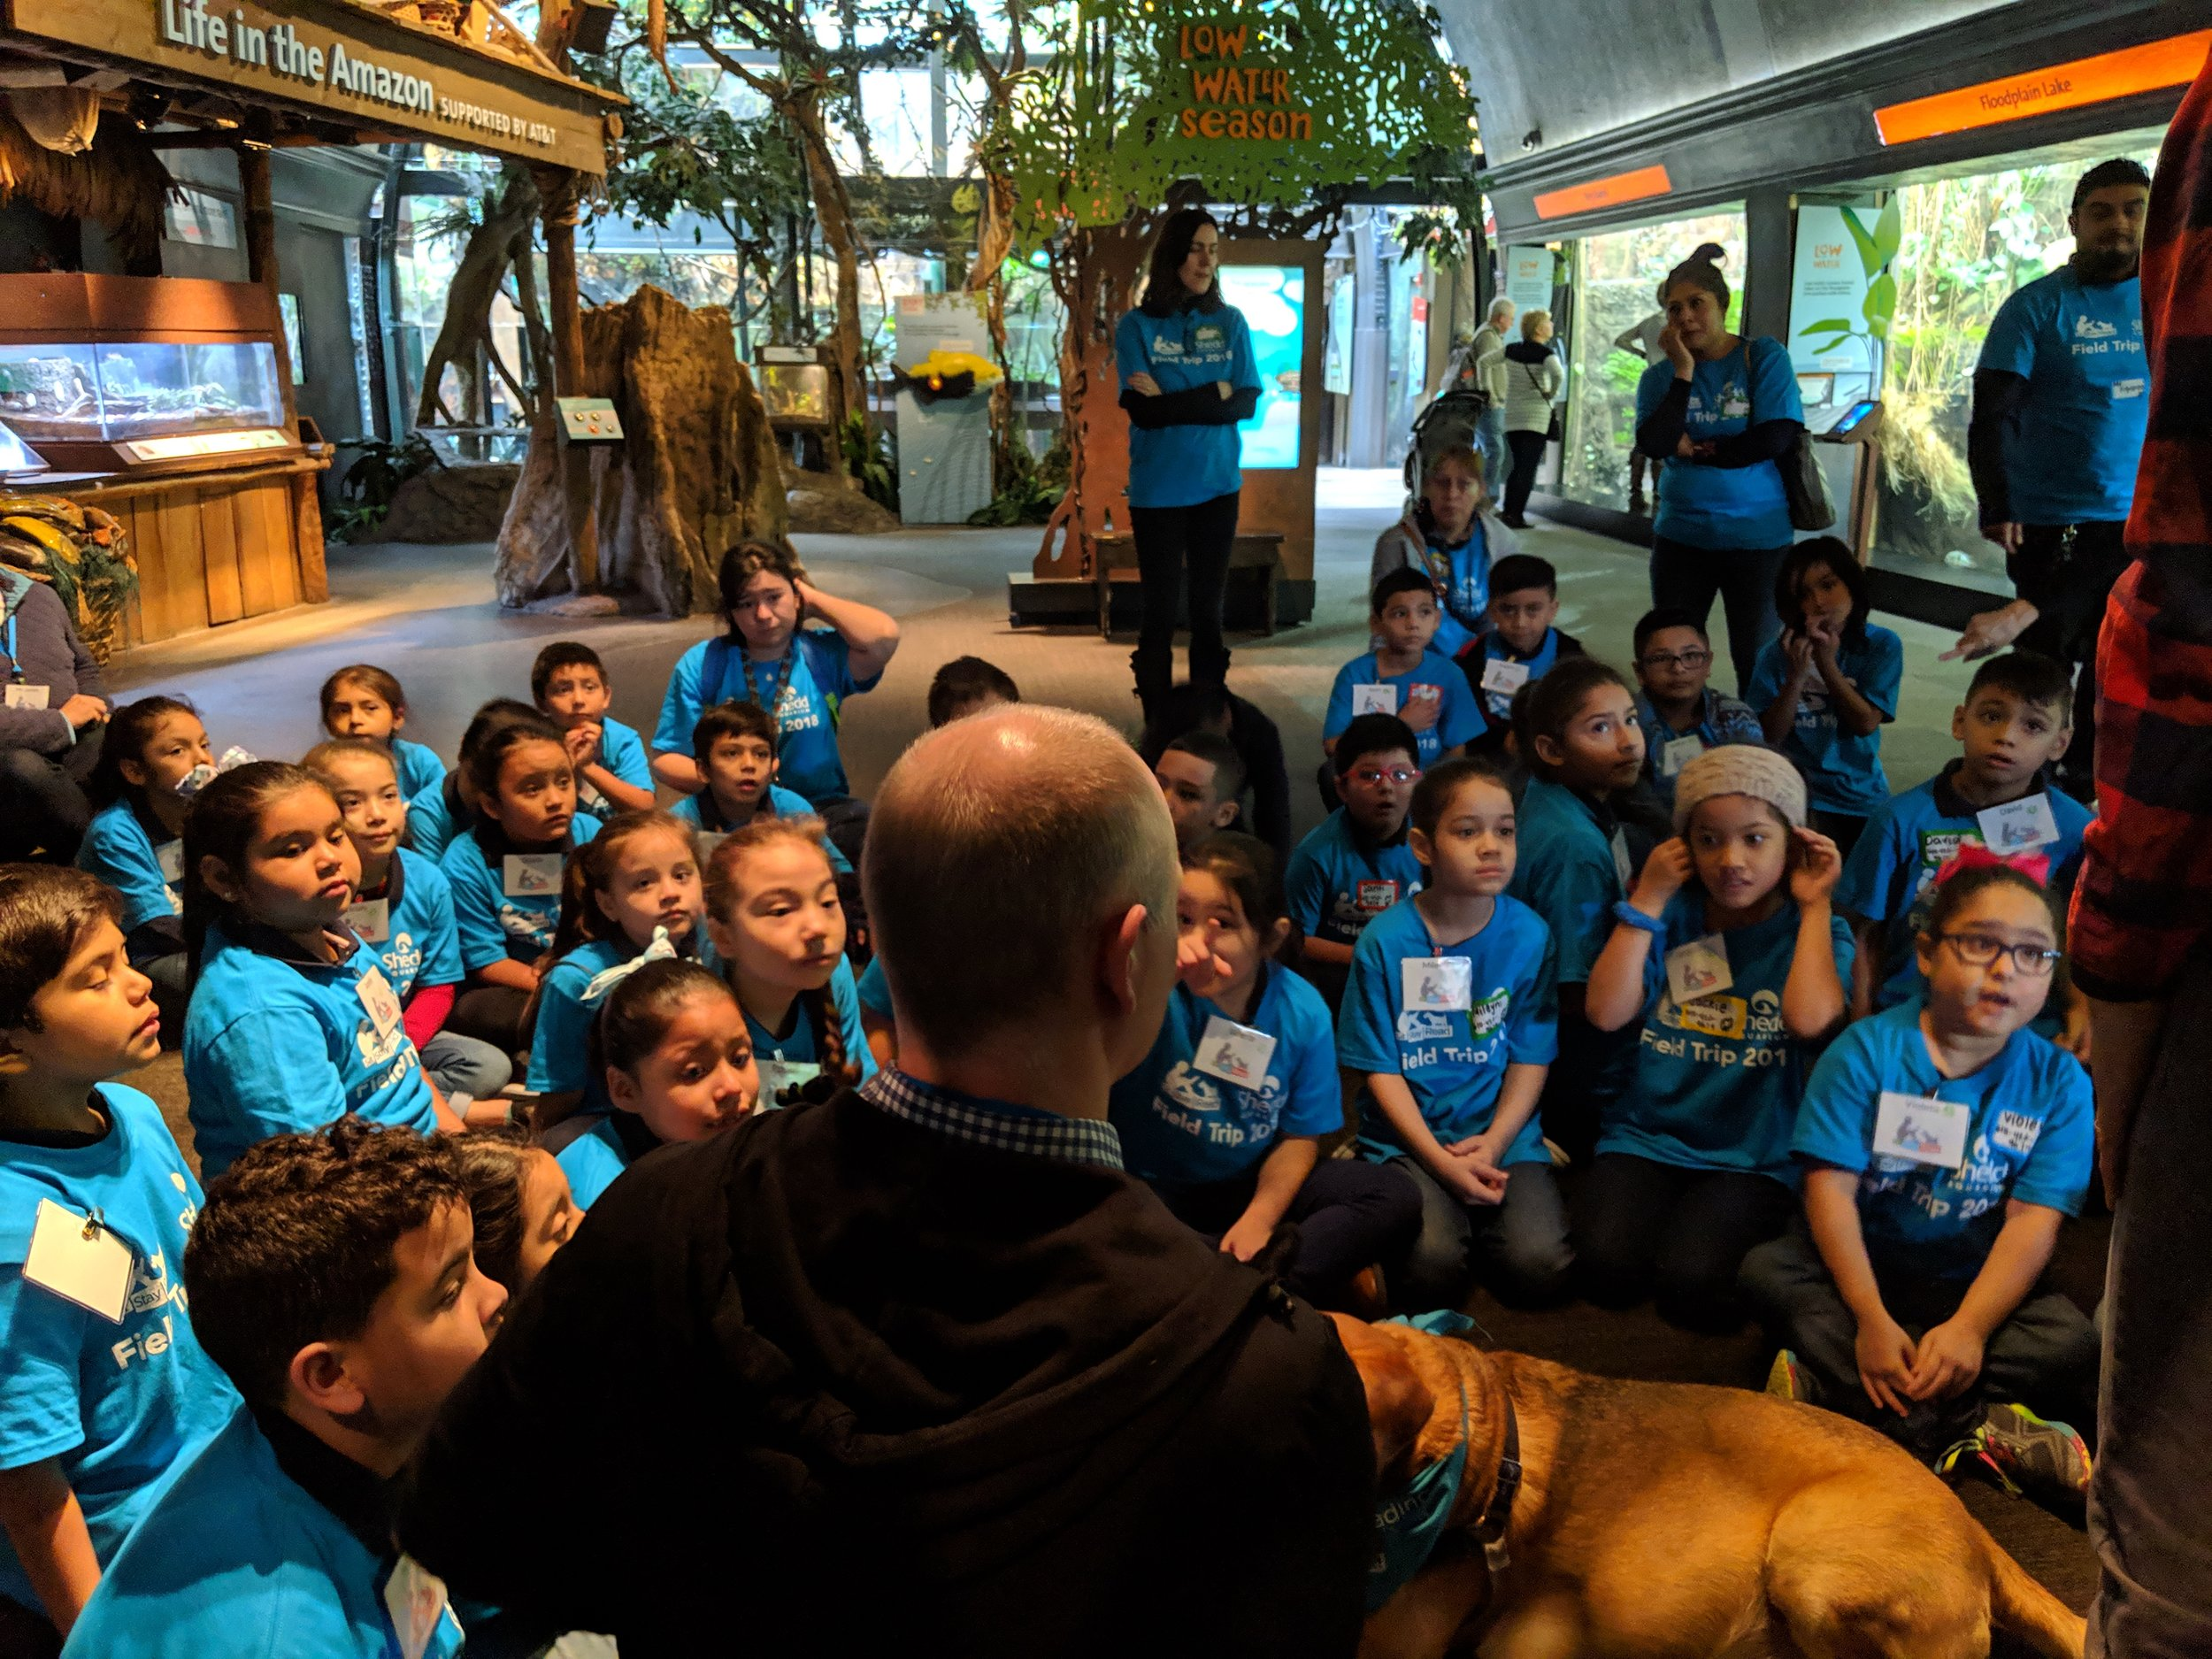 Students listen to Mr. Max, the Shedd Aquarium's Program Leader, for instructions about their activity.